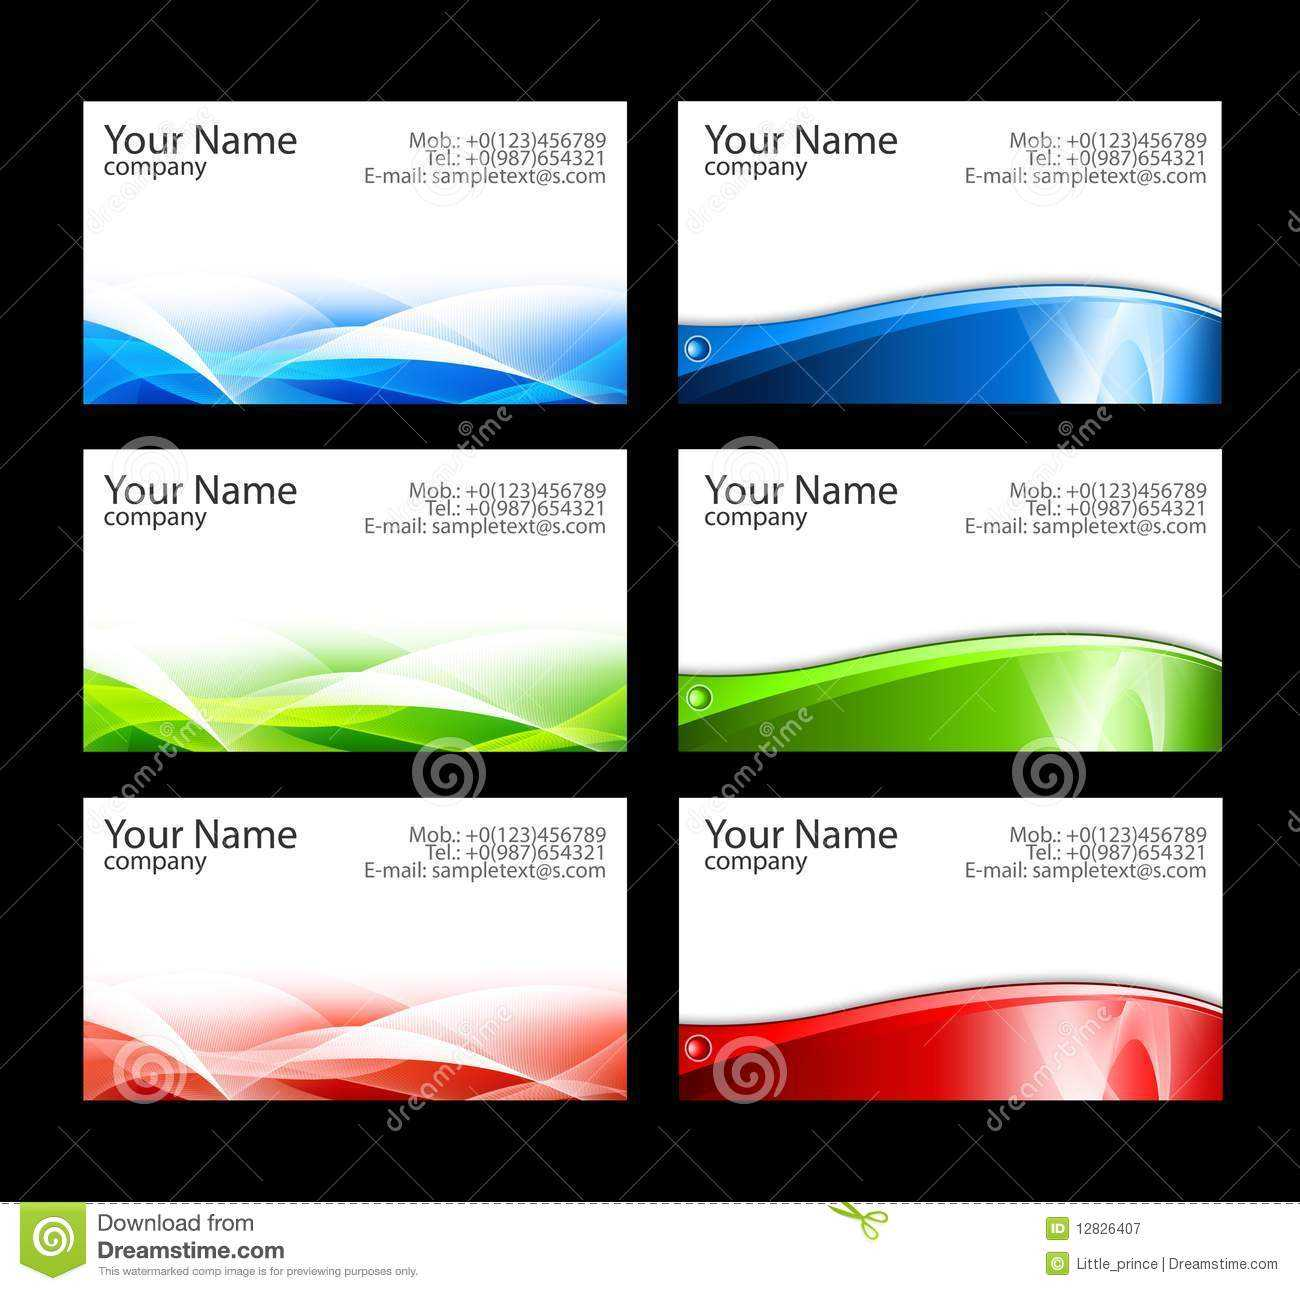 Free Calling Card Template Download – Tunu.redmini.co For Template For Calling Card